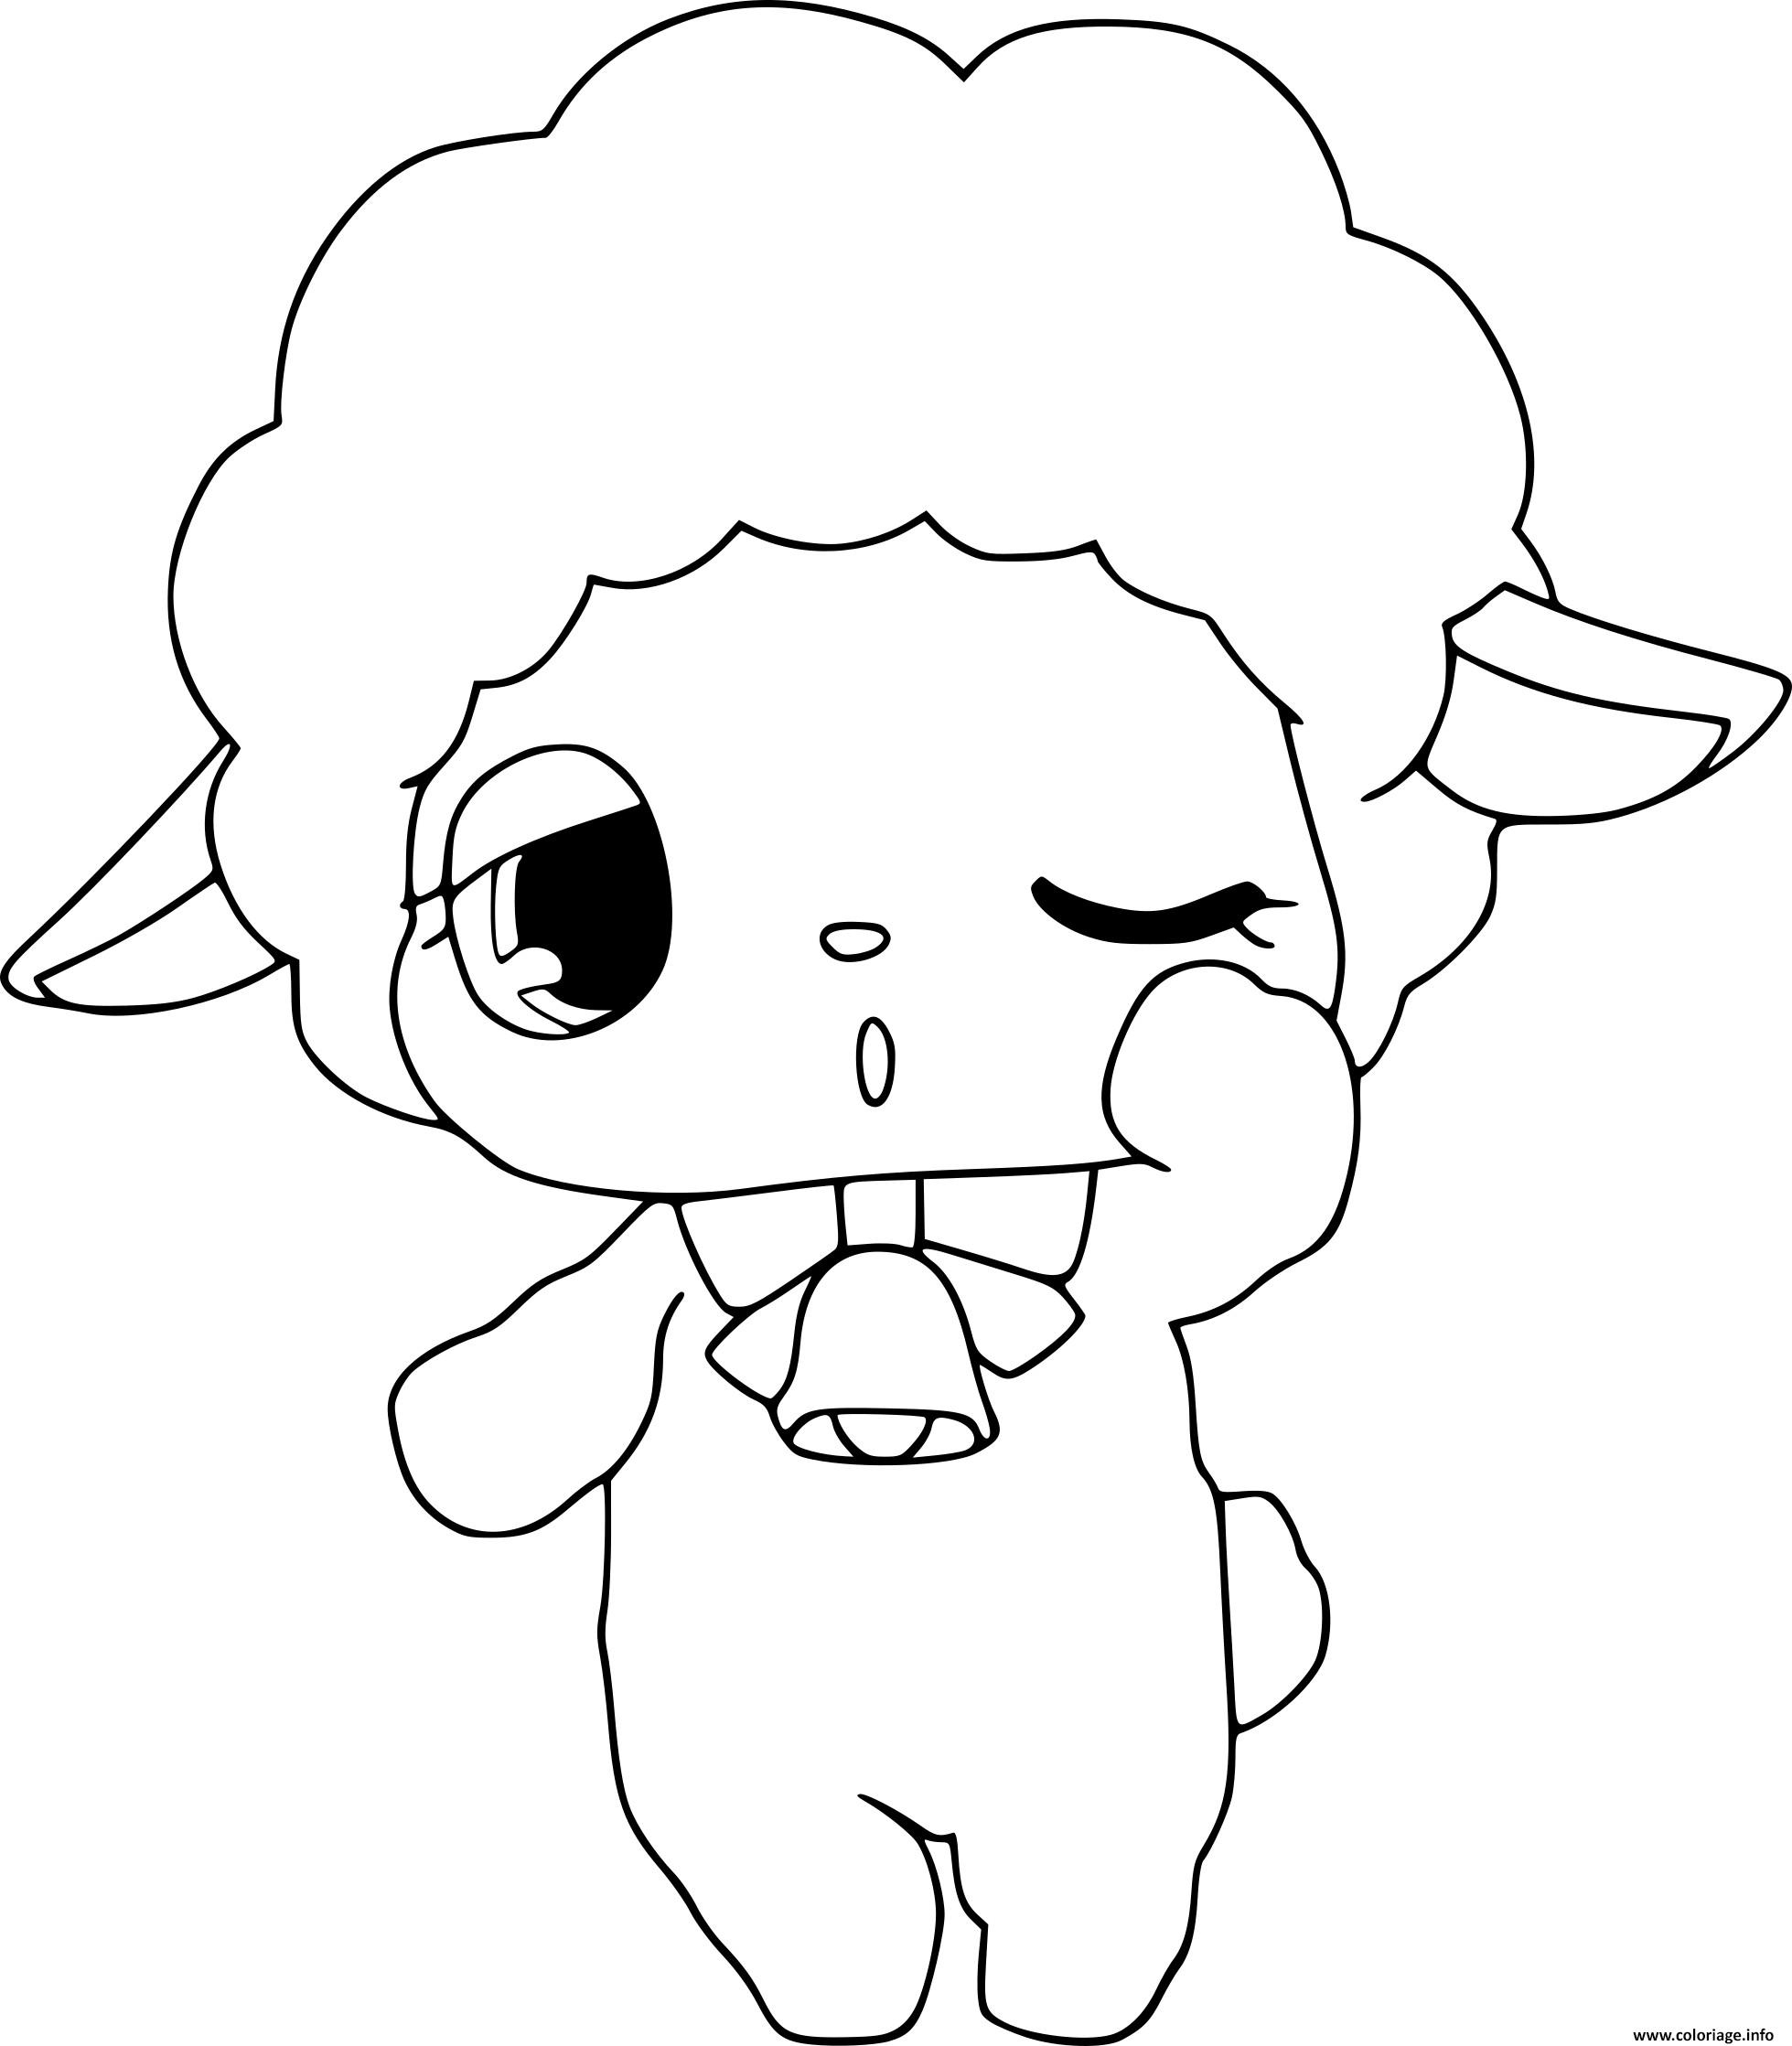 Coloriage Jewelpet Mouton Dessin dedans Photo De Mouton A Imprimer